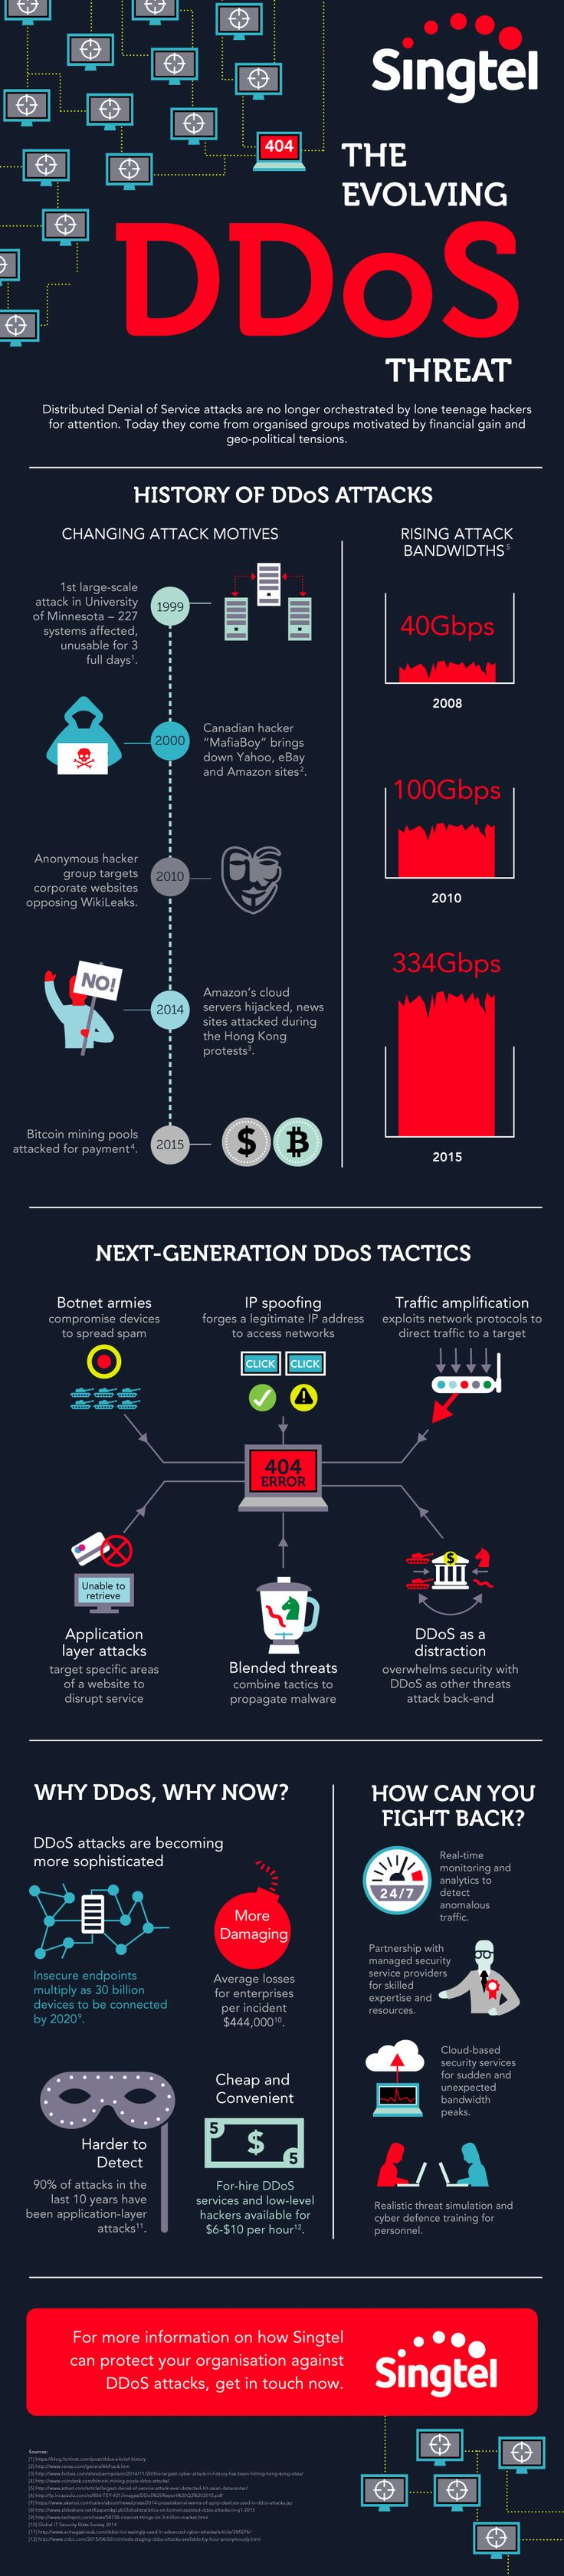 DDoS Threat  Infographic.   Design: Russell Tate. www.RussellTate.com